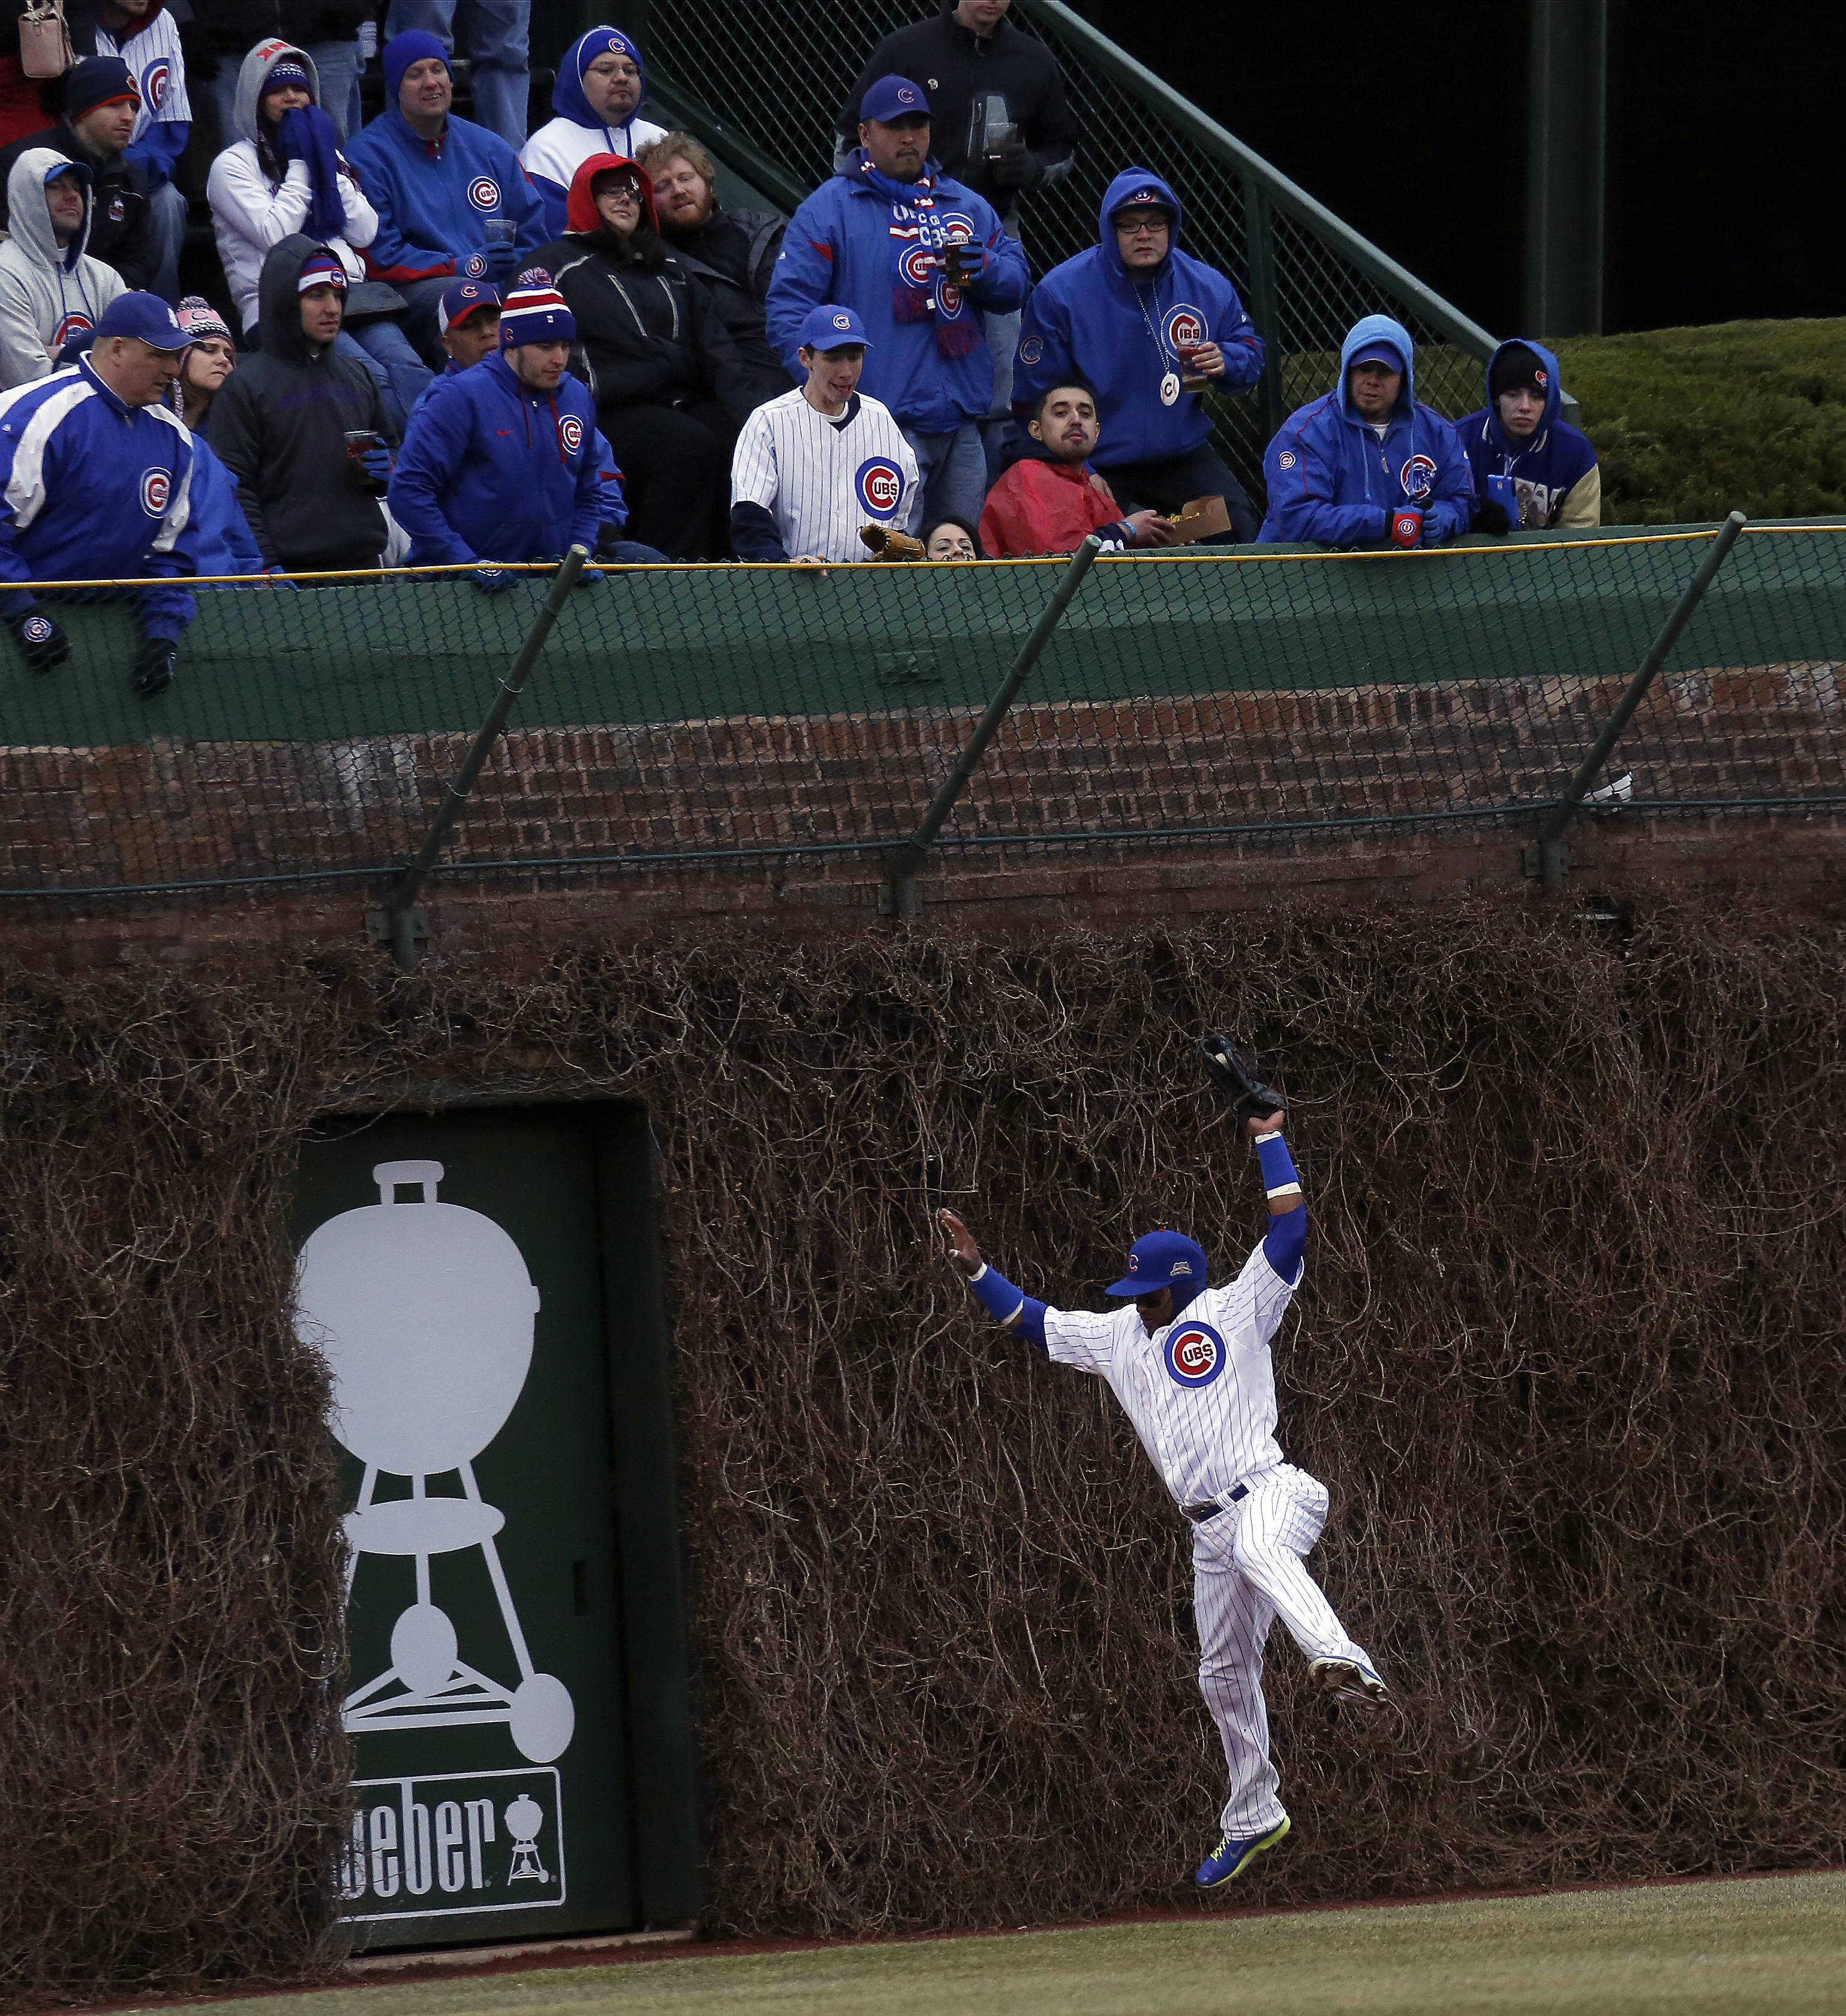 Not only is the Cubs' Emilio Bonifacio hitting up a storm, he is playing some impressive defense. Here he grabs a drive in center field off the bat of the Phillies' Ryan Howard in the seventh inning Friday at Wrigley Field.